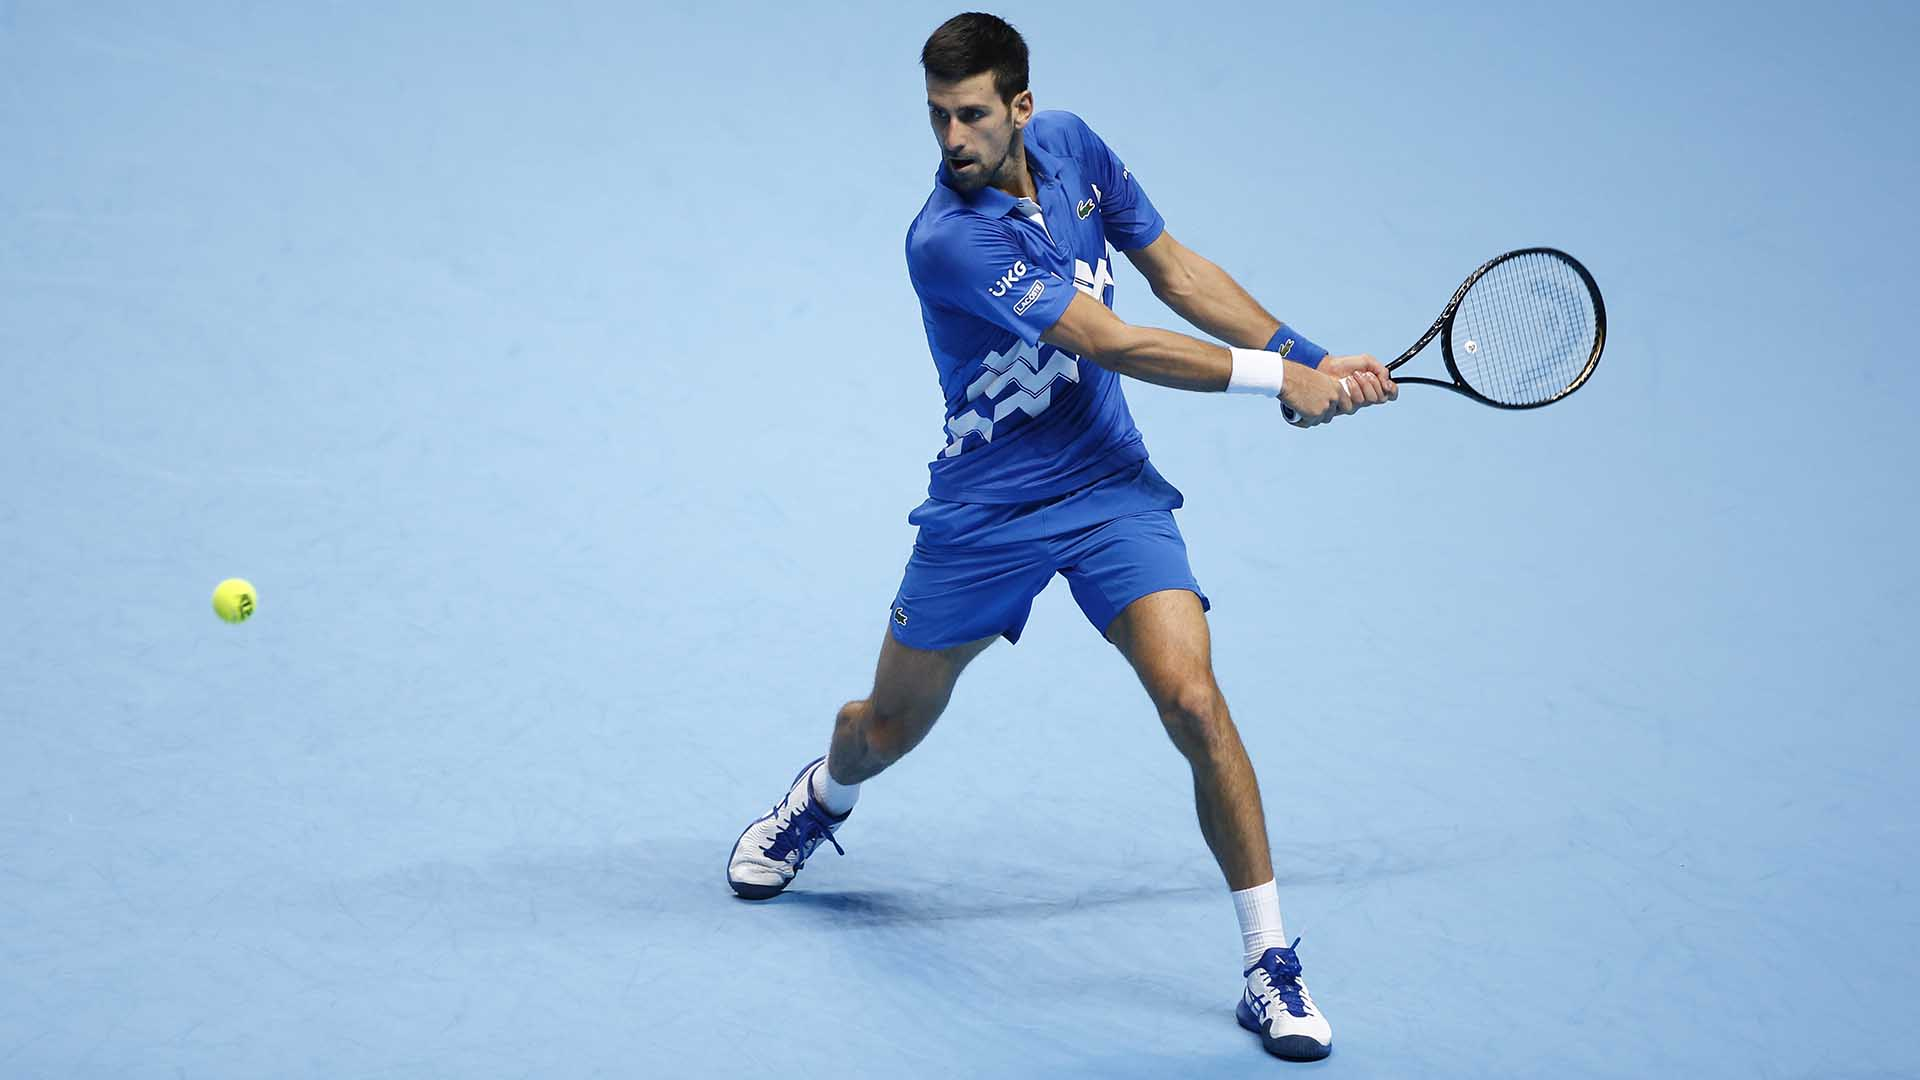 <a href='/en/players/novak-djokovic/d643/overview'>Novak Djokovic</a> is aiming to capture a record-equalling sixth <a href='/en/tournaments/nitto-atp-finals/605/overview'>Nitto ATP Finals</a> title this year.